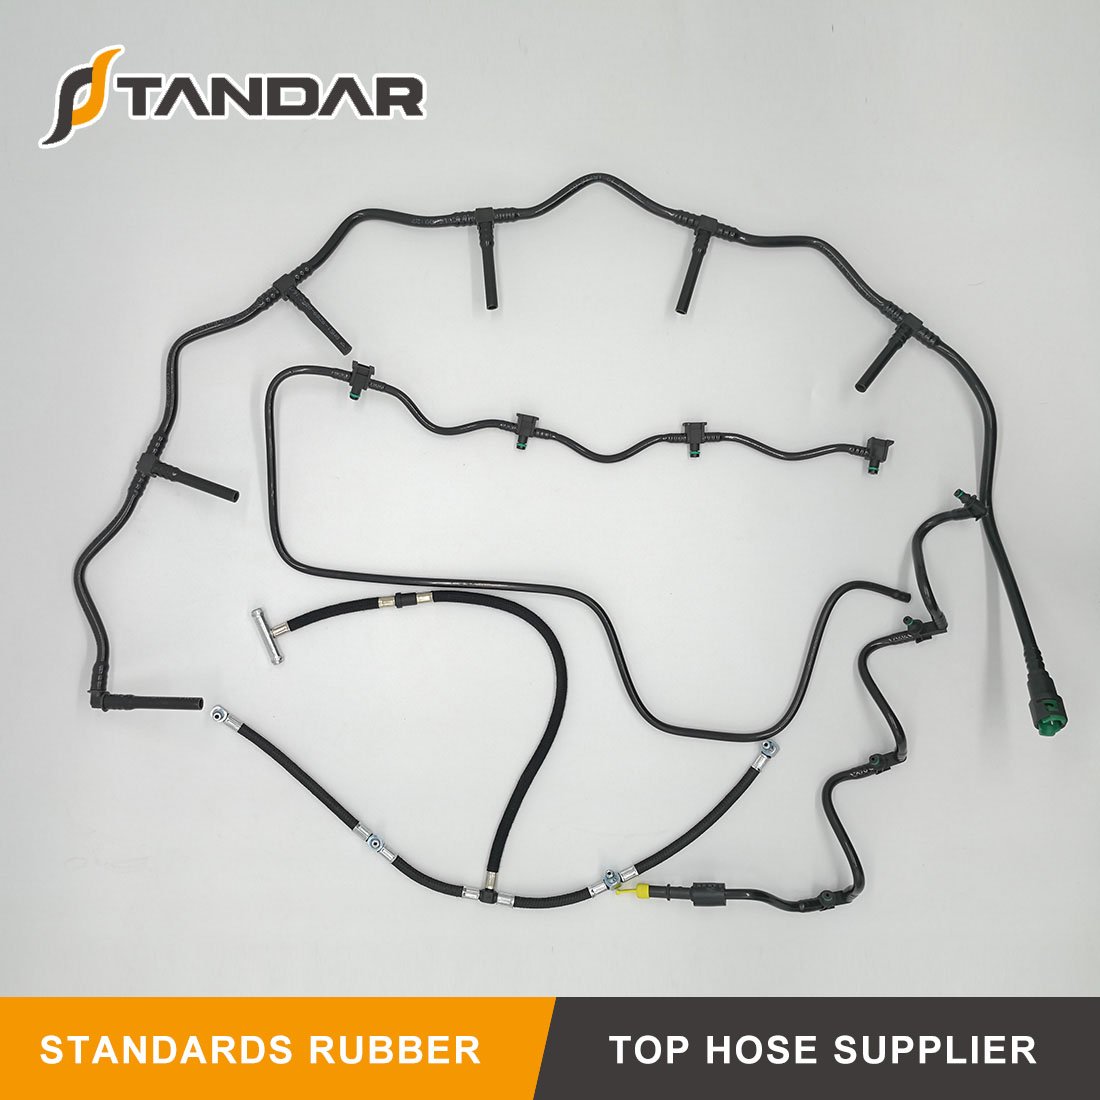 OEM 1901729 Coolant Bleed Hose Asembly for Scania Engine